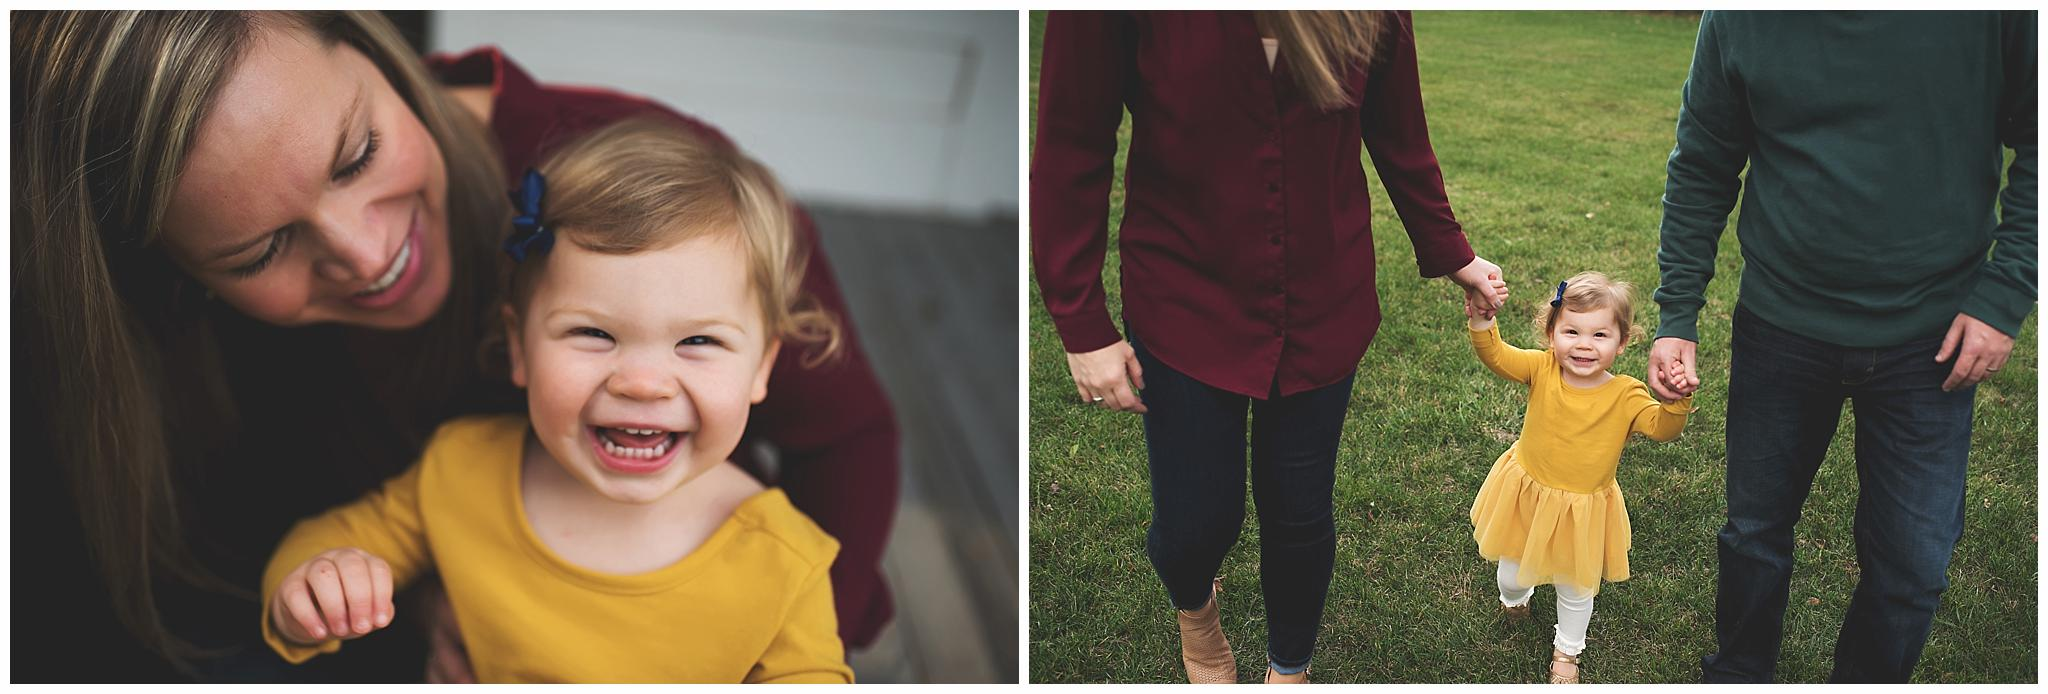 northville lifestyle family photographer - smiling